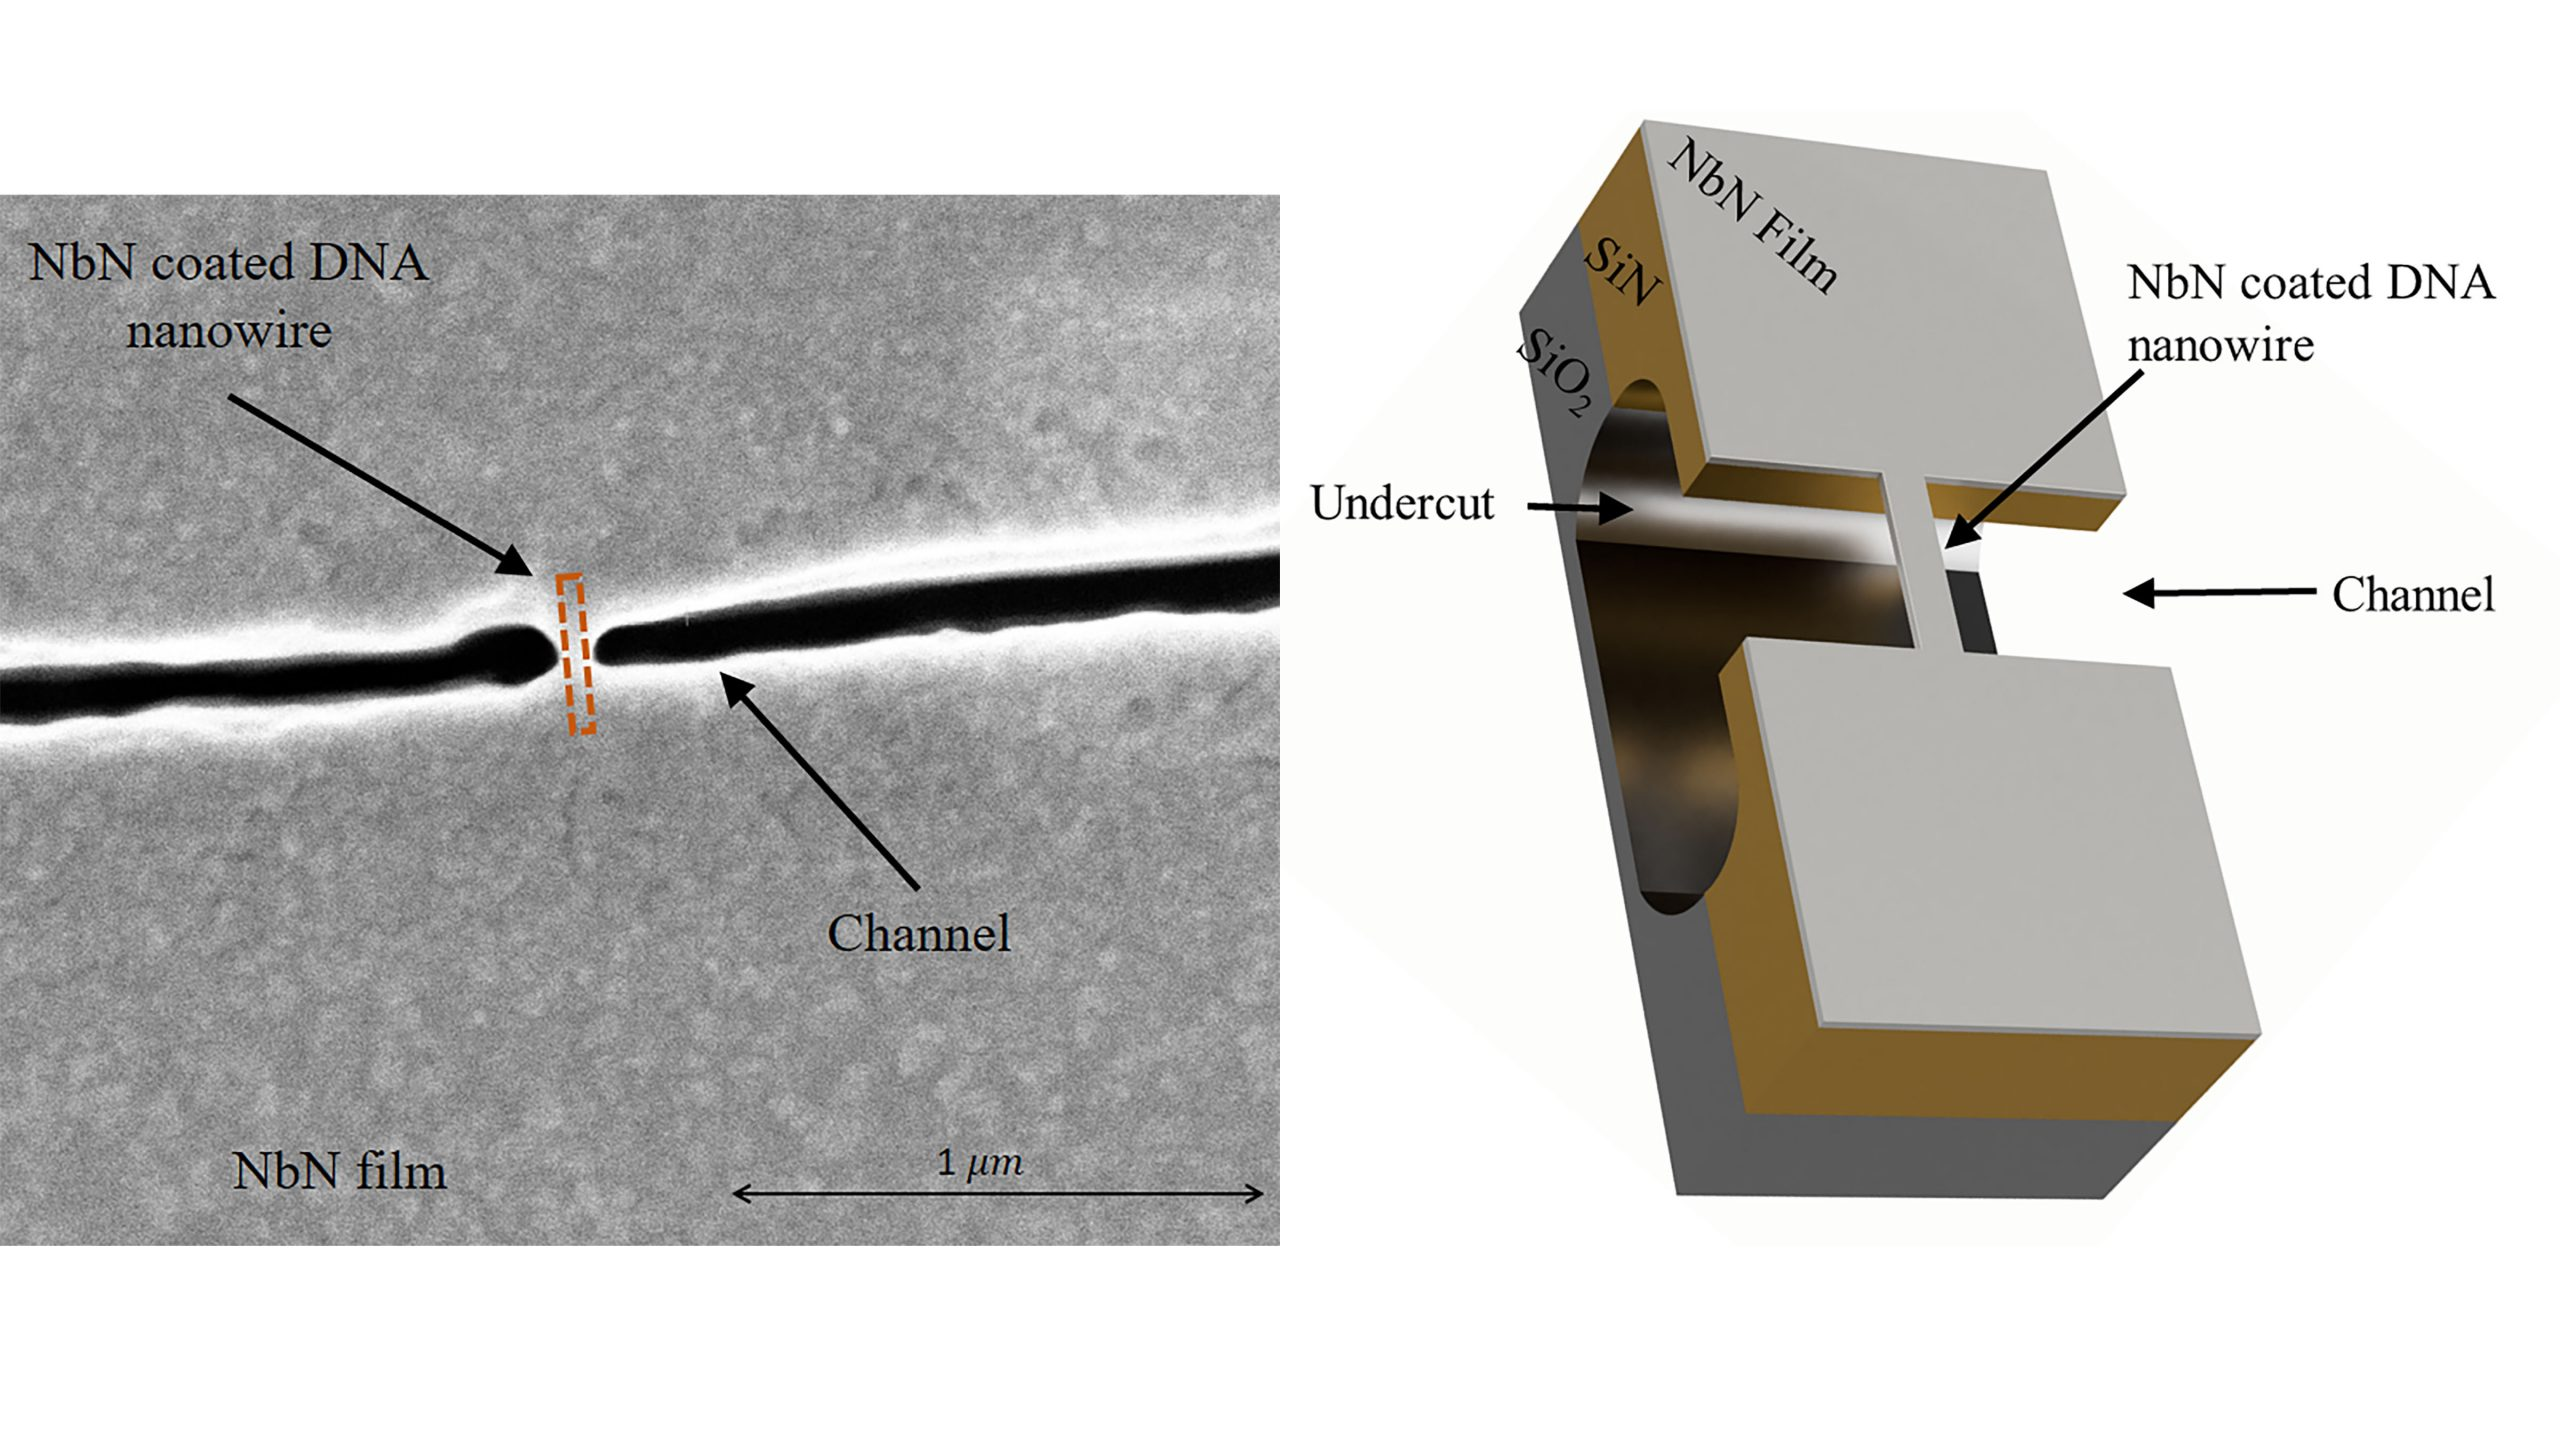 (left) Schematic illustration of a niobium nitrate-coated DNA nanowire suspended above a silicon nitride/silicon oxide channel. (right) High-resolution scanning electron microscope (HR-SEM) image of the channel (black in image) on which the DNA nanowire is suspended. In the image, the channel appears discontinuous, reflecting the DNA suspended across it (marked by dashed orange rectangle). The distance between the two sides of the channel is ~50 nanometers, and the width of the niobium nitrate-coated nanowire at its narrowest point is ~25 nanometers. CREDIT: Lior Shani, Philip Tinnefeld, Yafit Fleger, Amos Sharoni, Boris Shapiro, Avner Shaulov, Oleg Gang, and Yosef Yeshurun